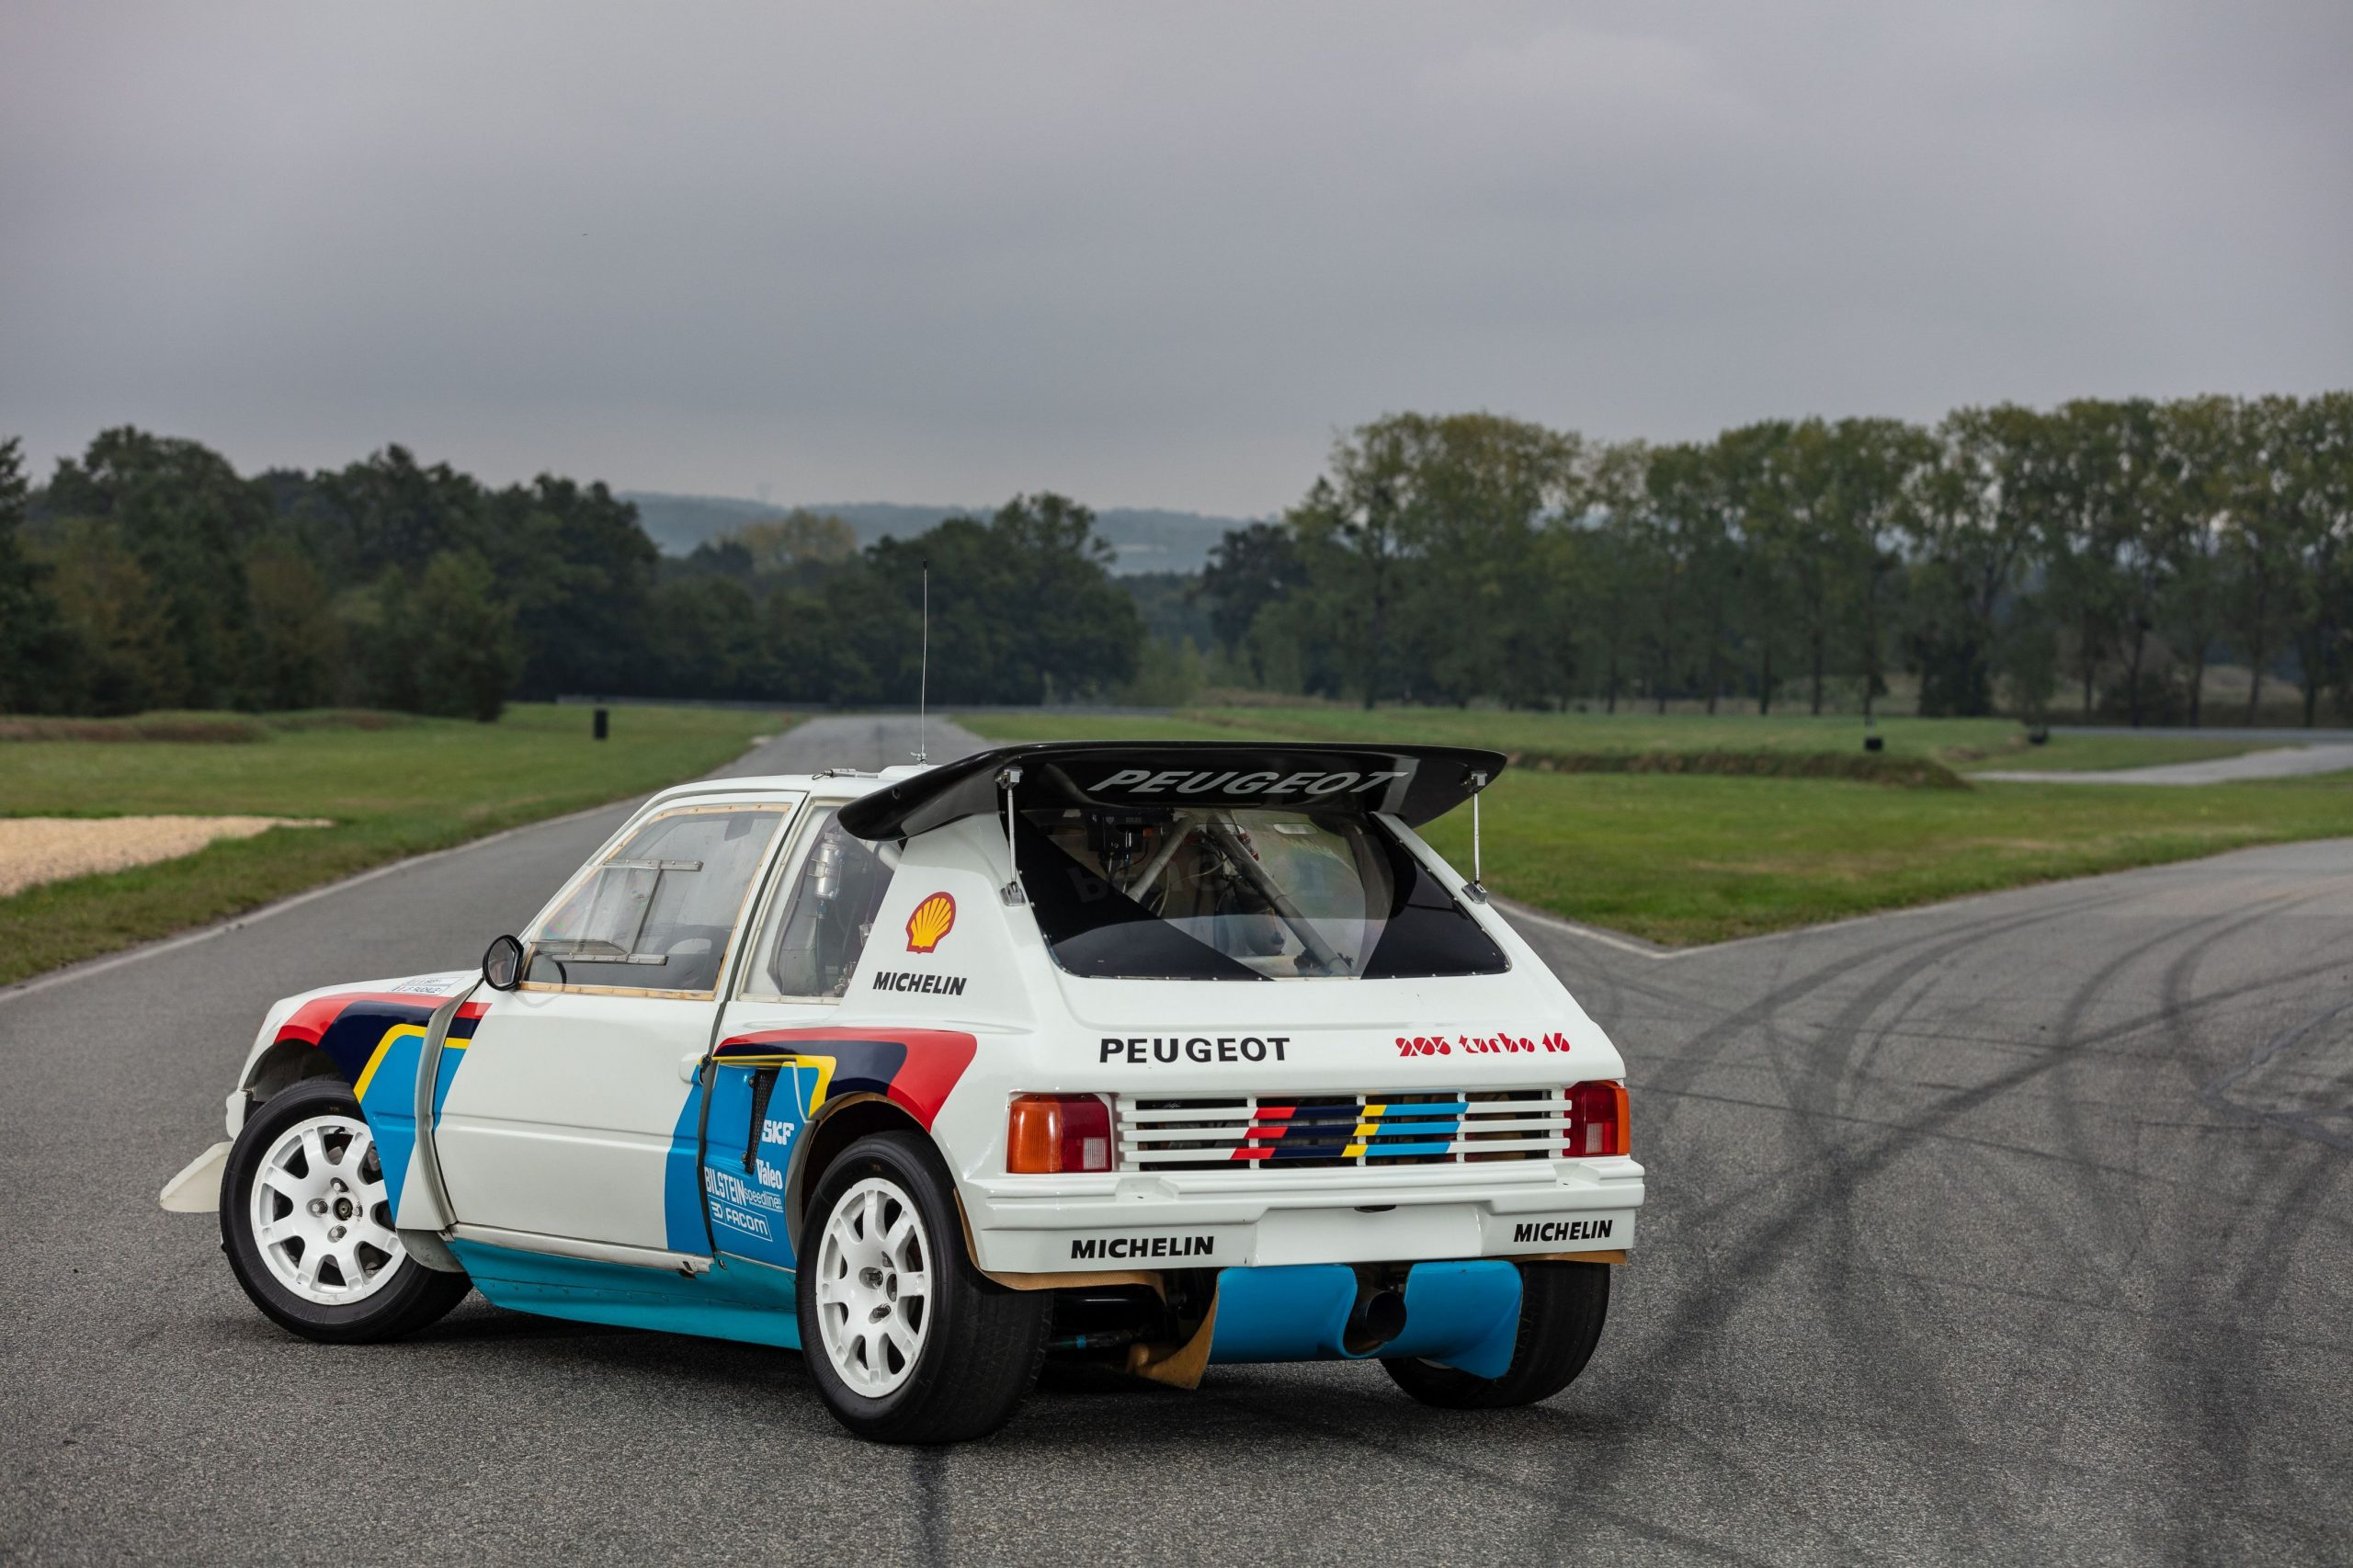 1985 Peugeot 205 Turbo 16 Evolution 2 rear three-quarter